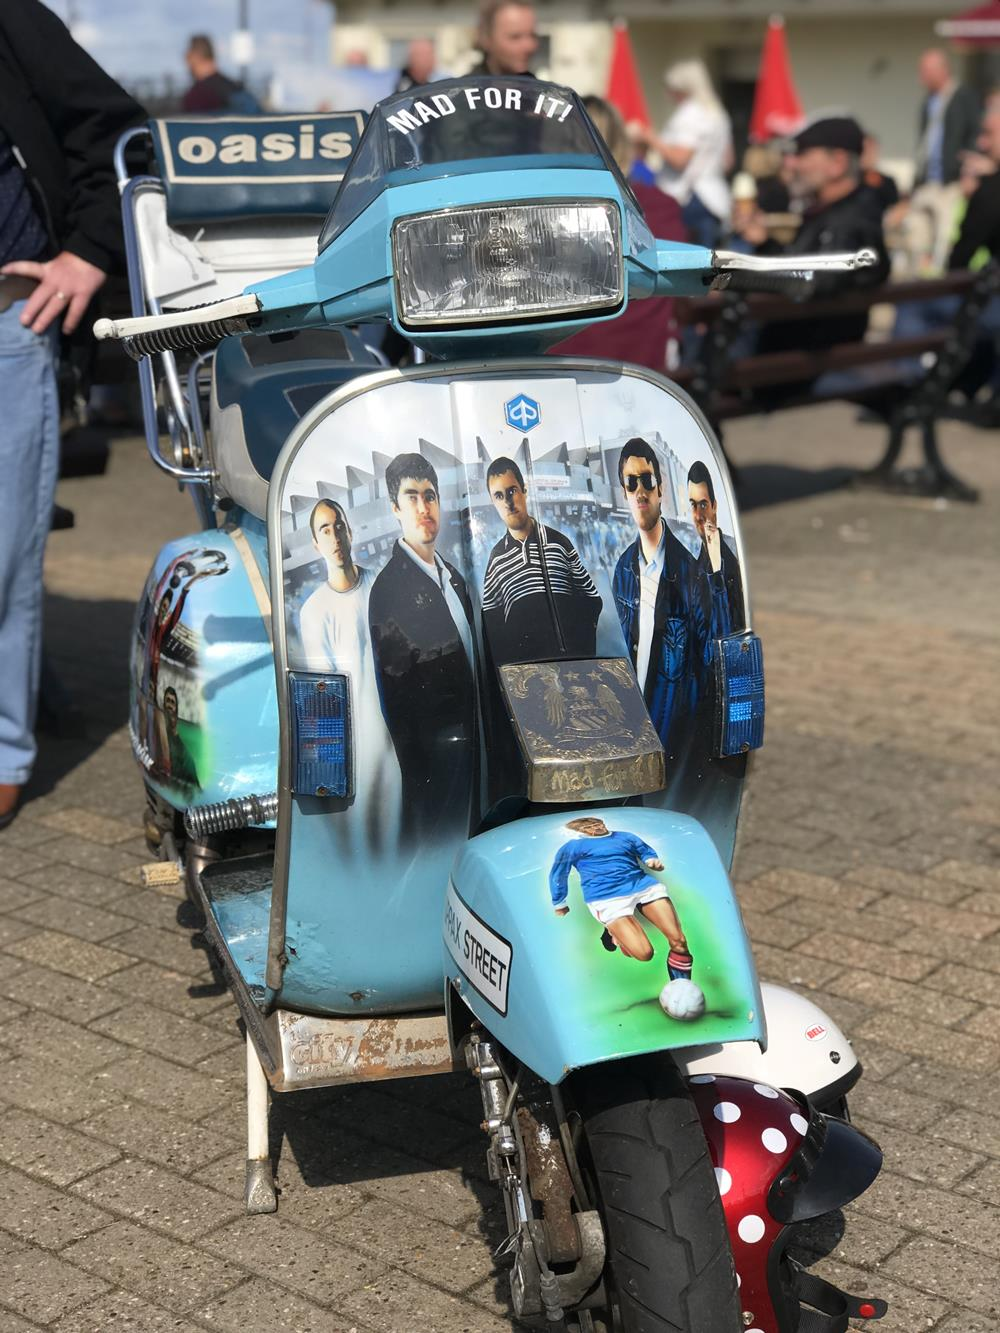 Oasis themed custom Vespa scooter